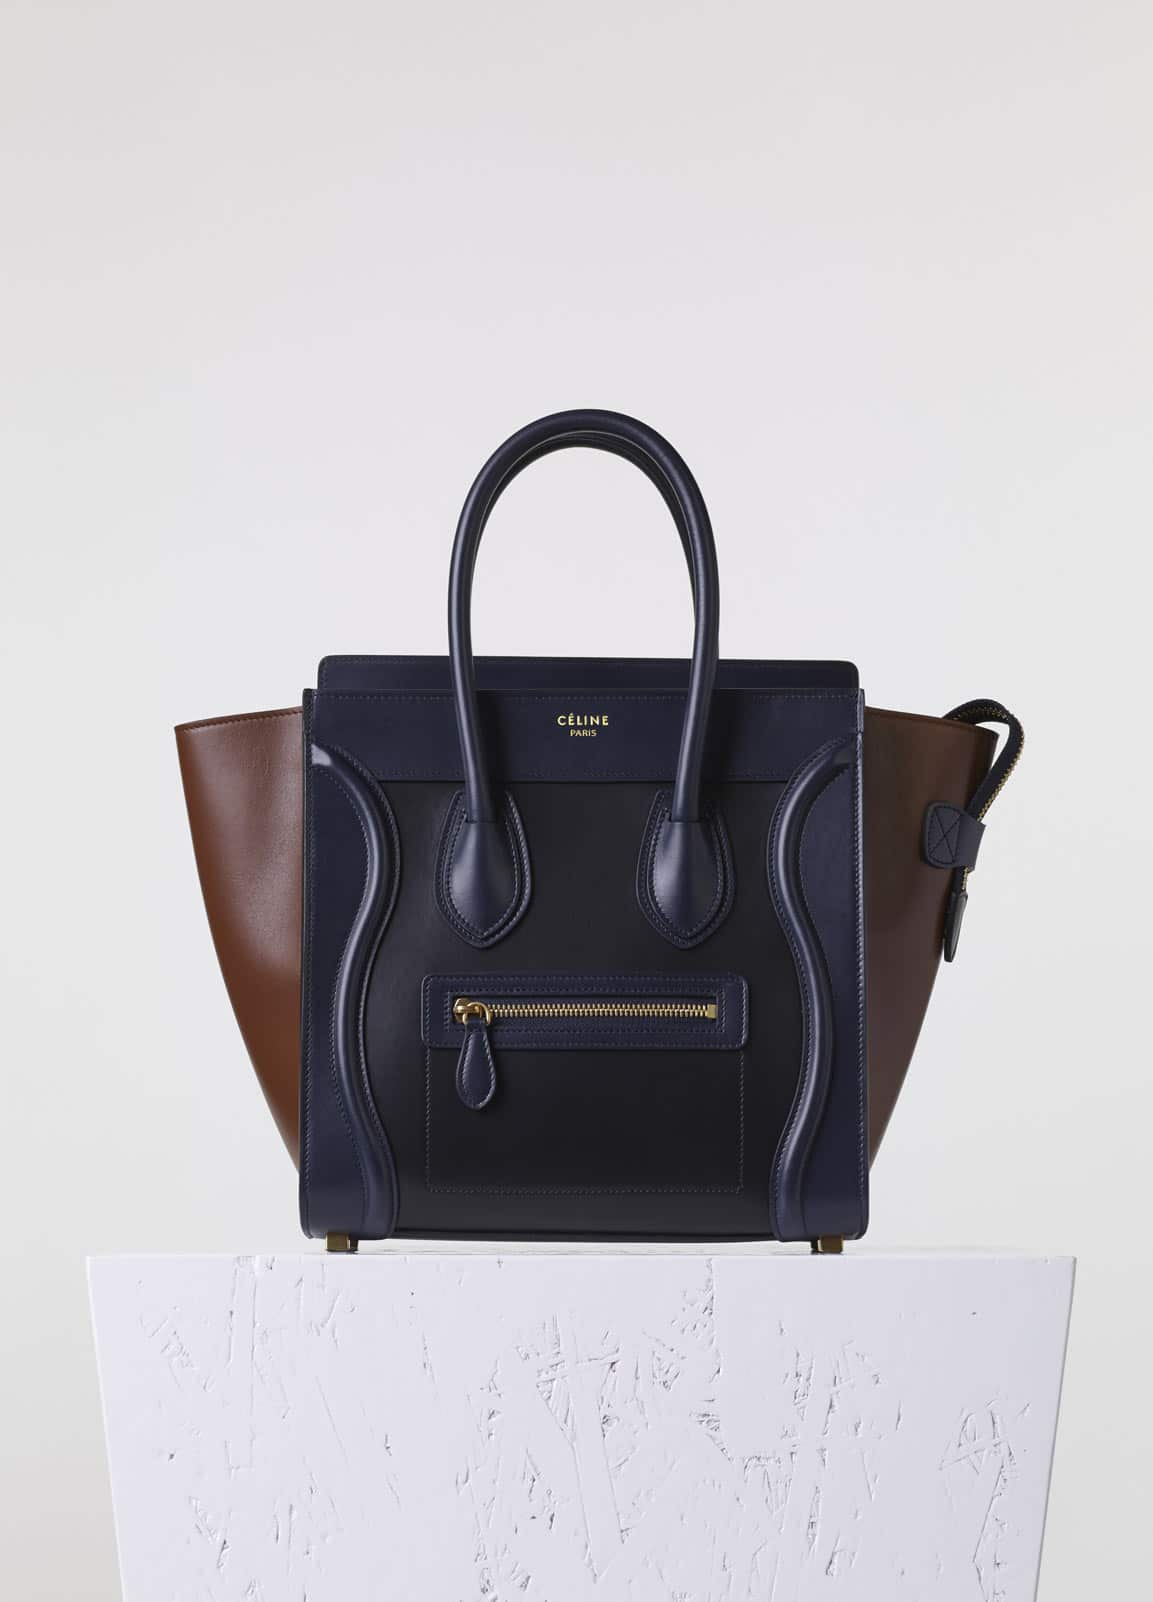 celine online shop usa - Celine Pre-Fall 2015 Bag Collection featuring new Sangle Hobo ...